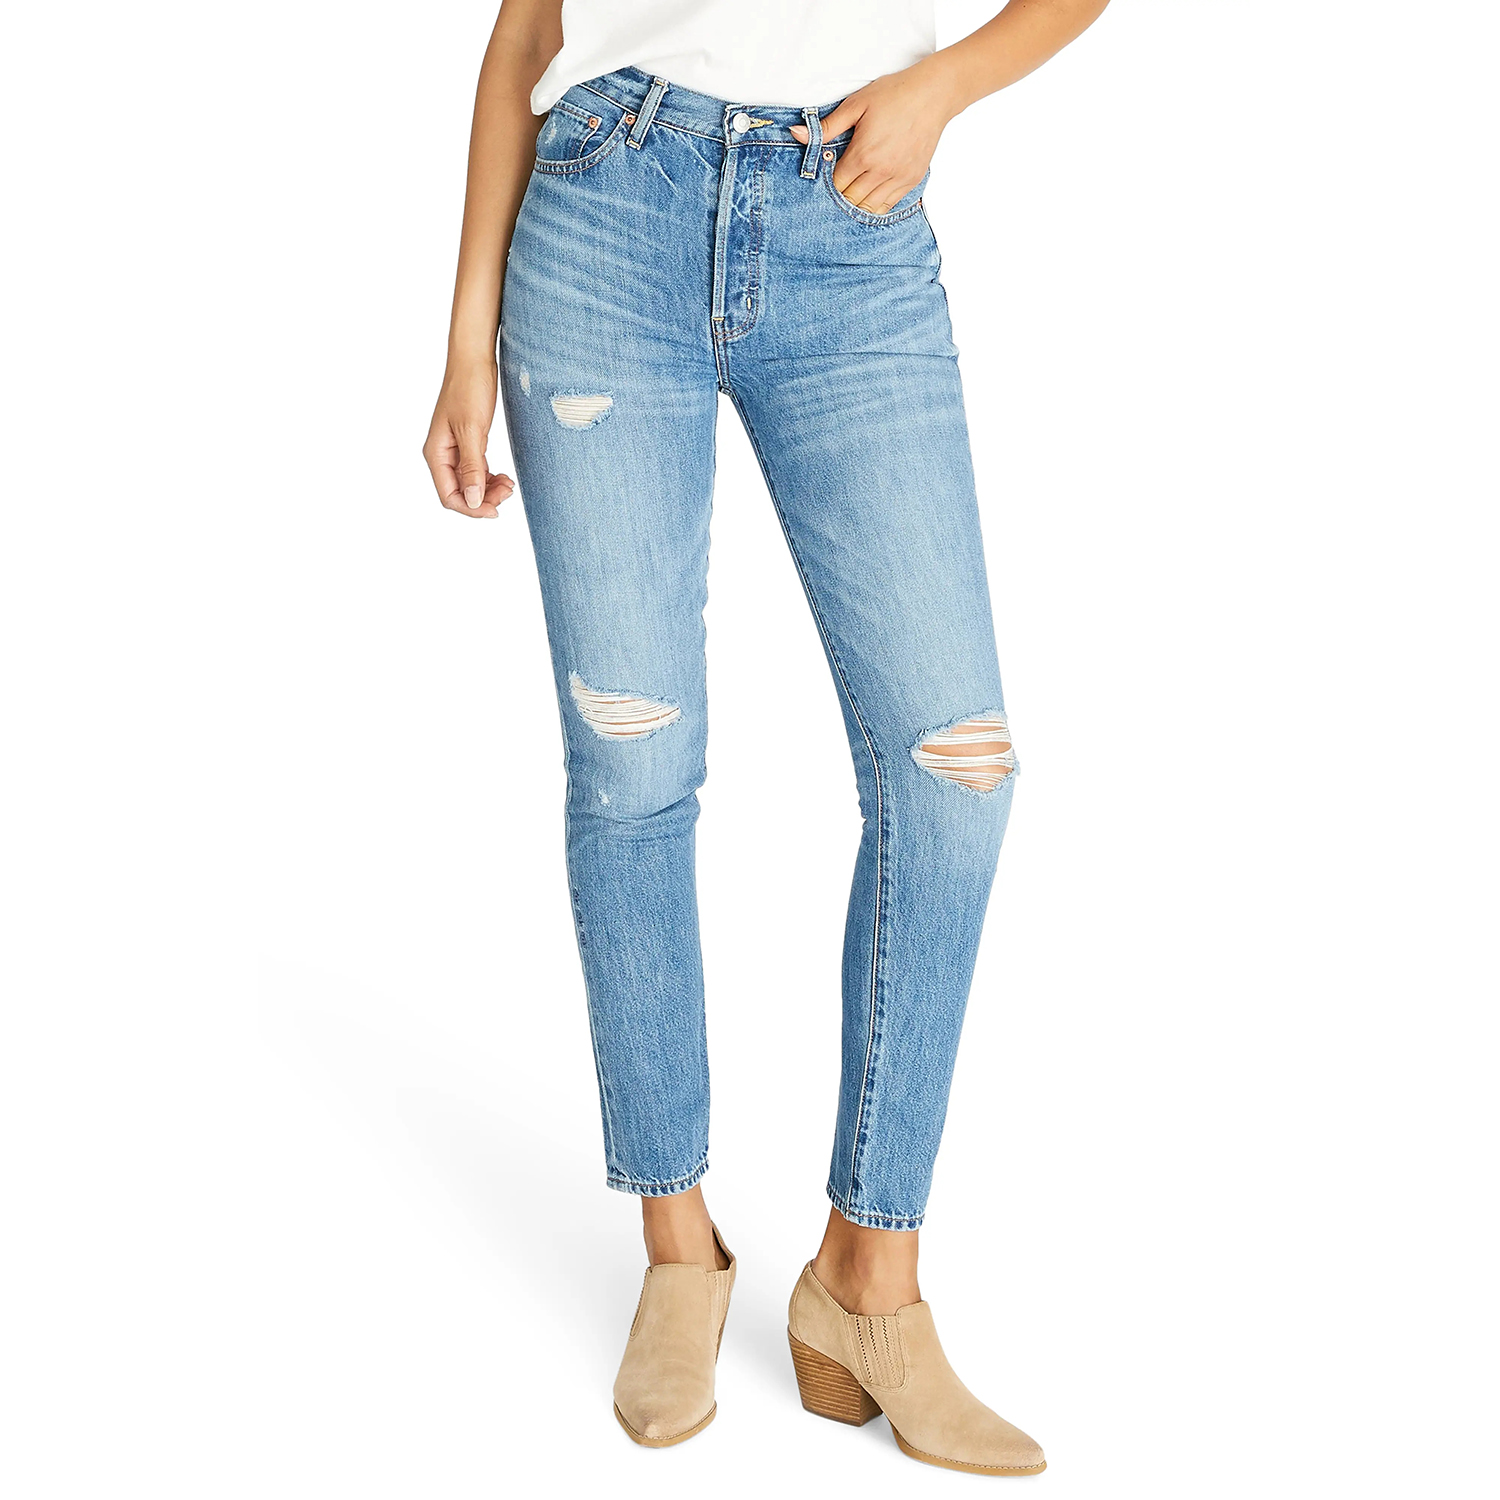 etica jeans